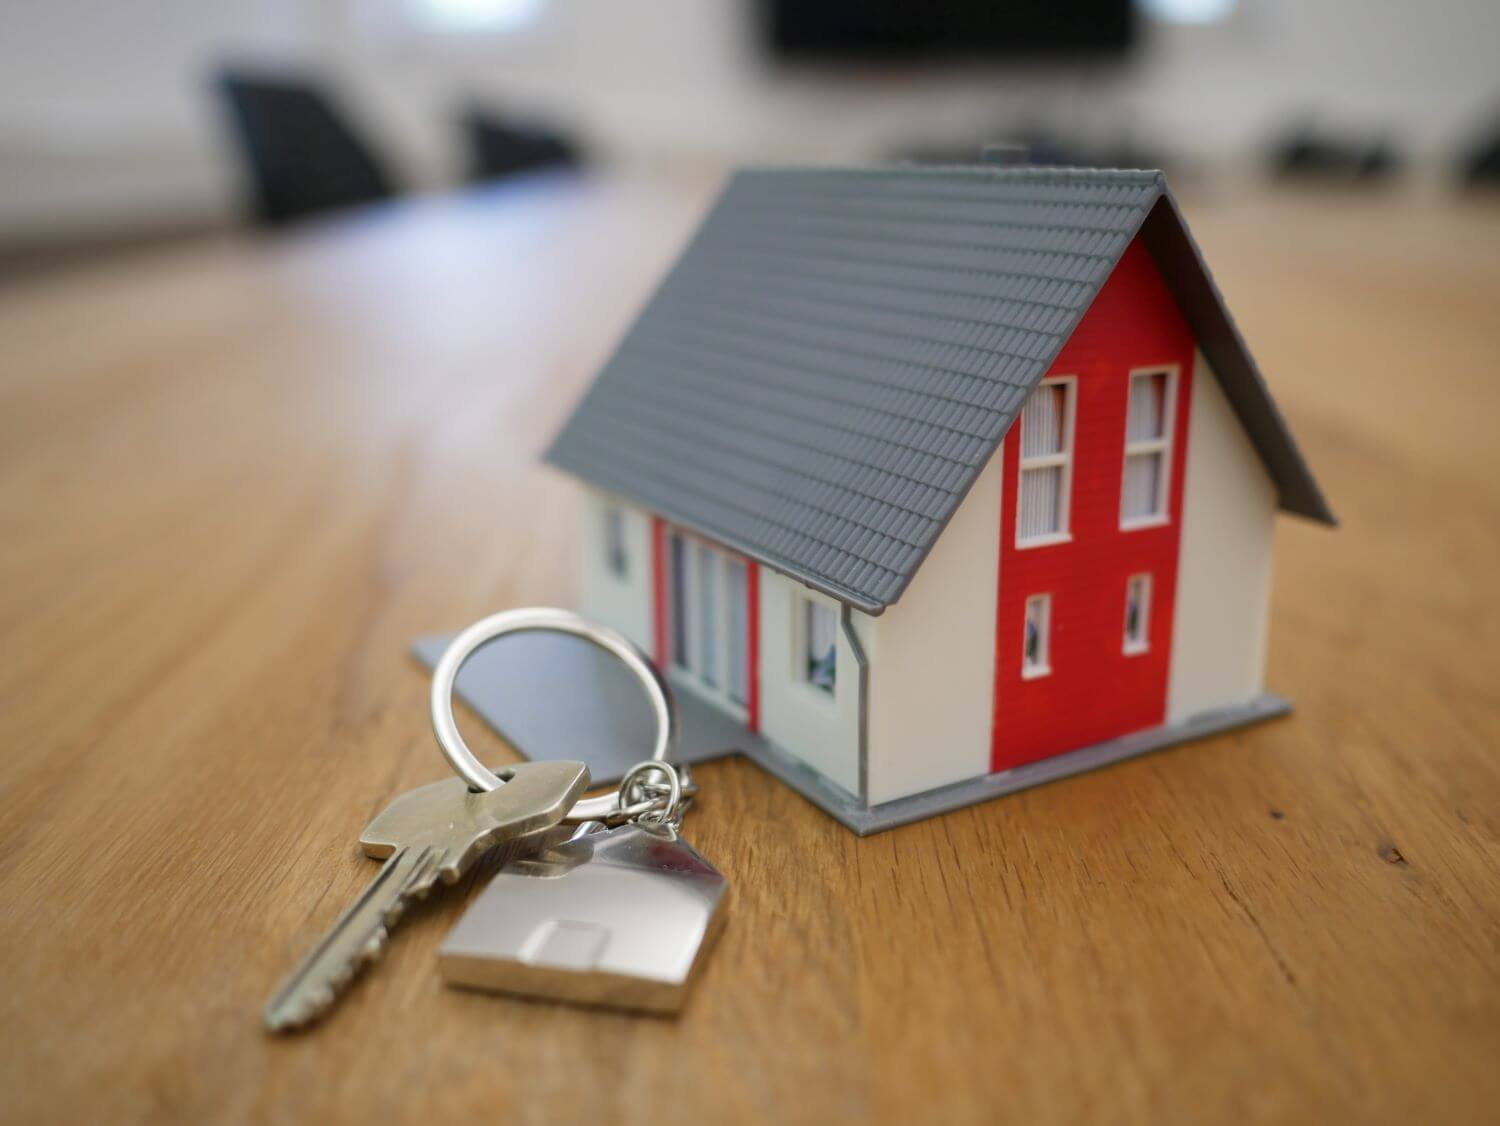 Image of a small wooden house and a person holding house keys.